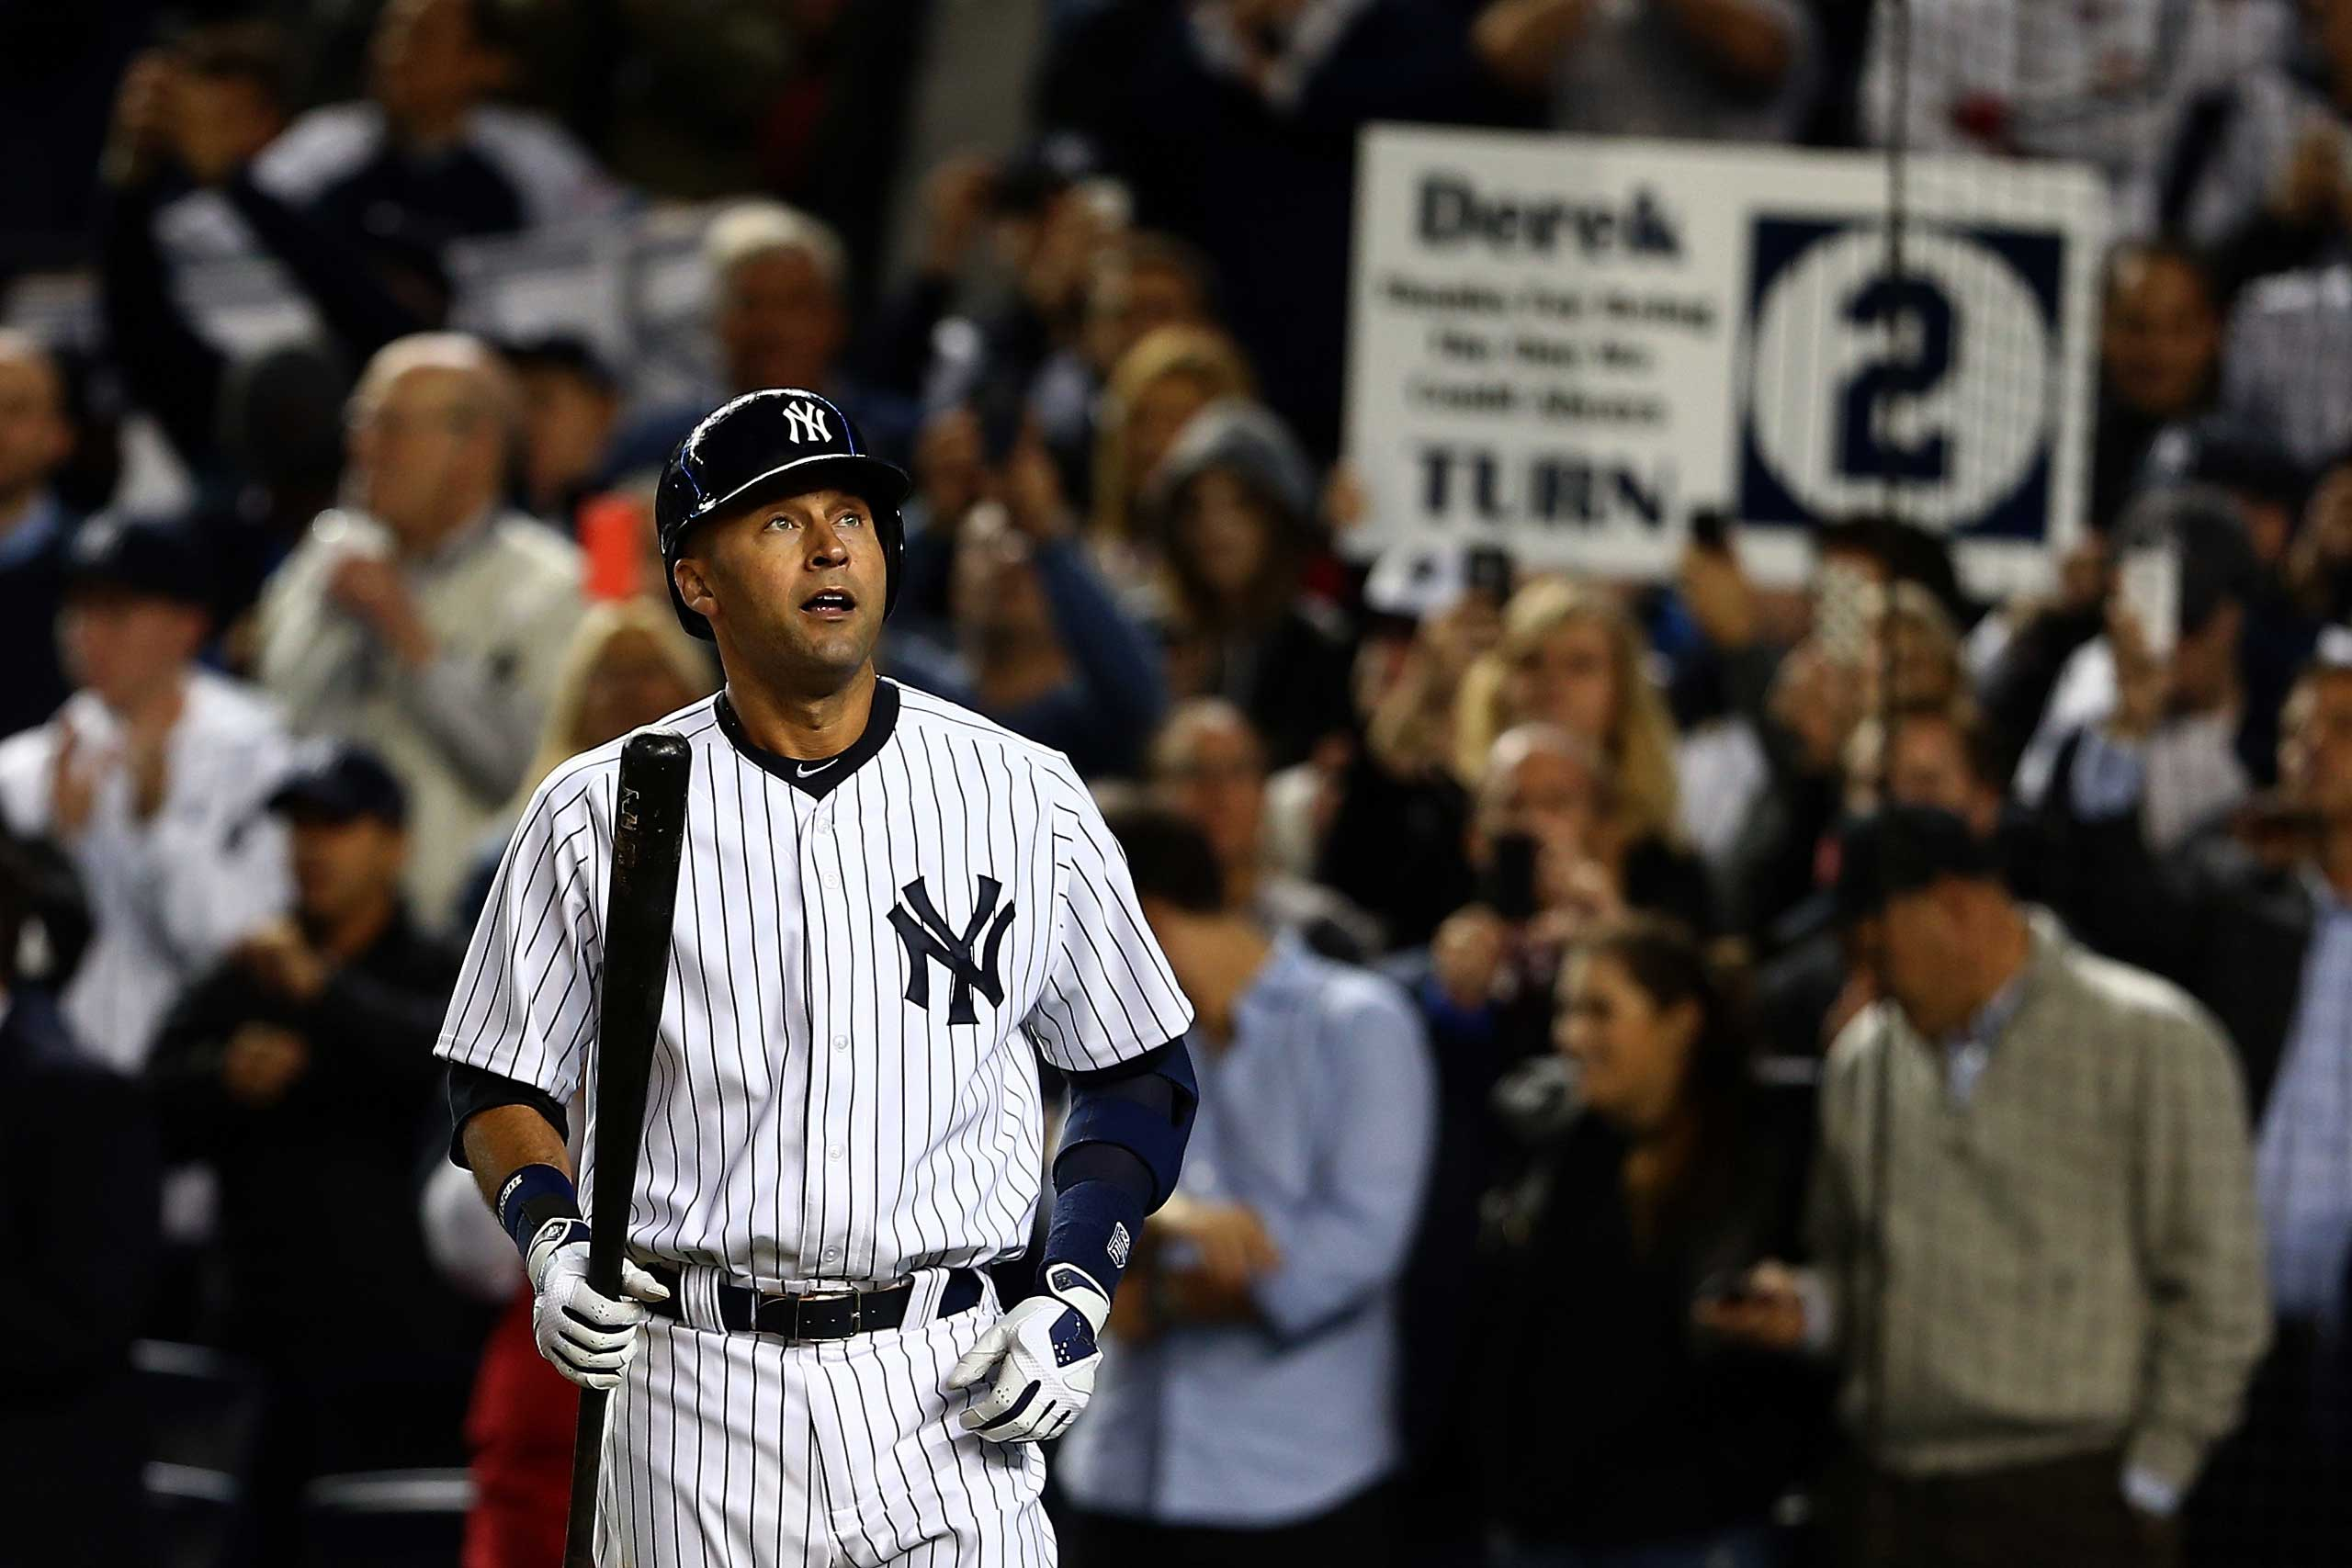 Derek Jeter walks to the plate against the Baltimore Orioles during his last game ever at Yankee Stadium on Sept. 25, 2014.